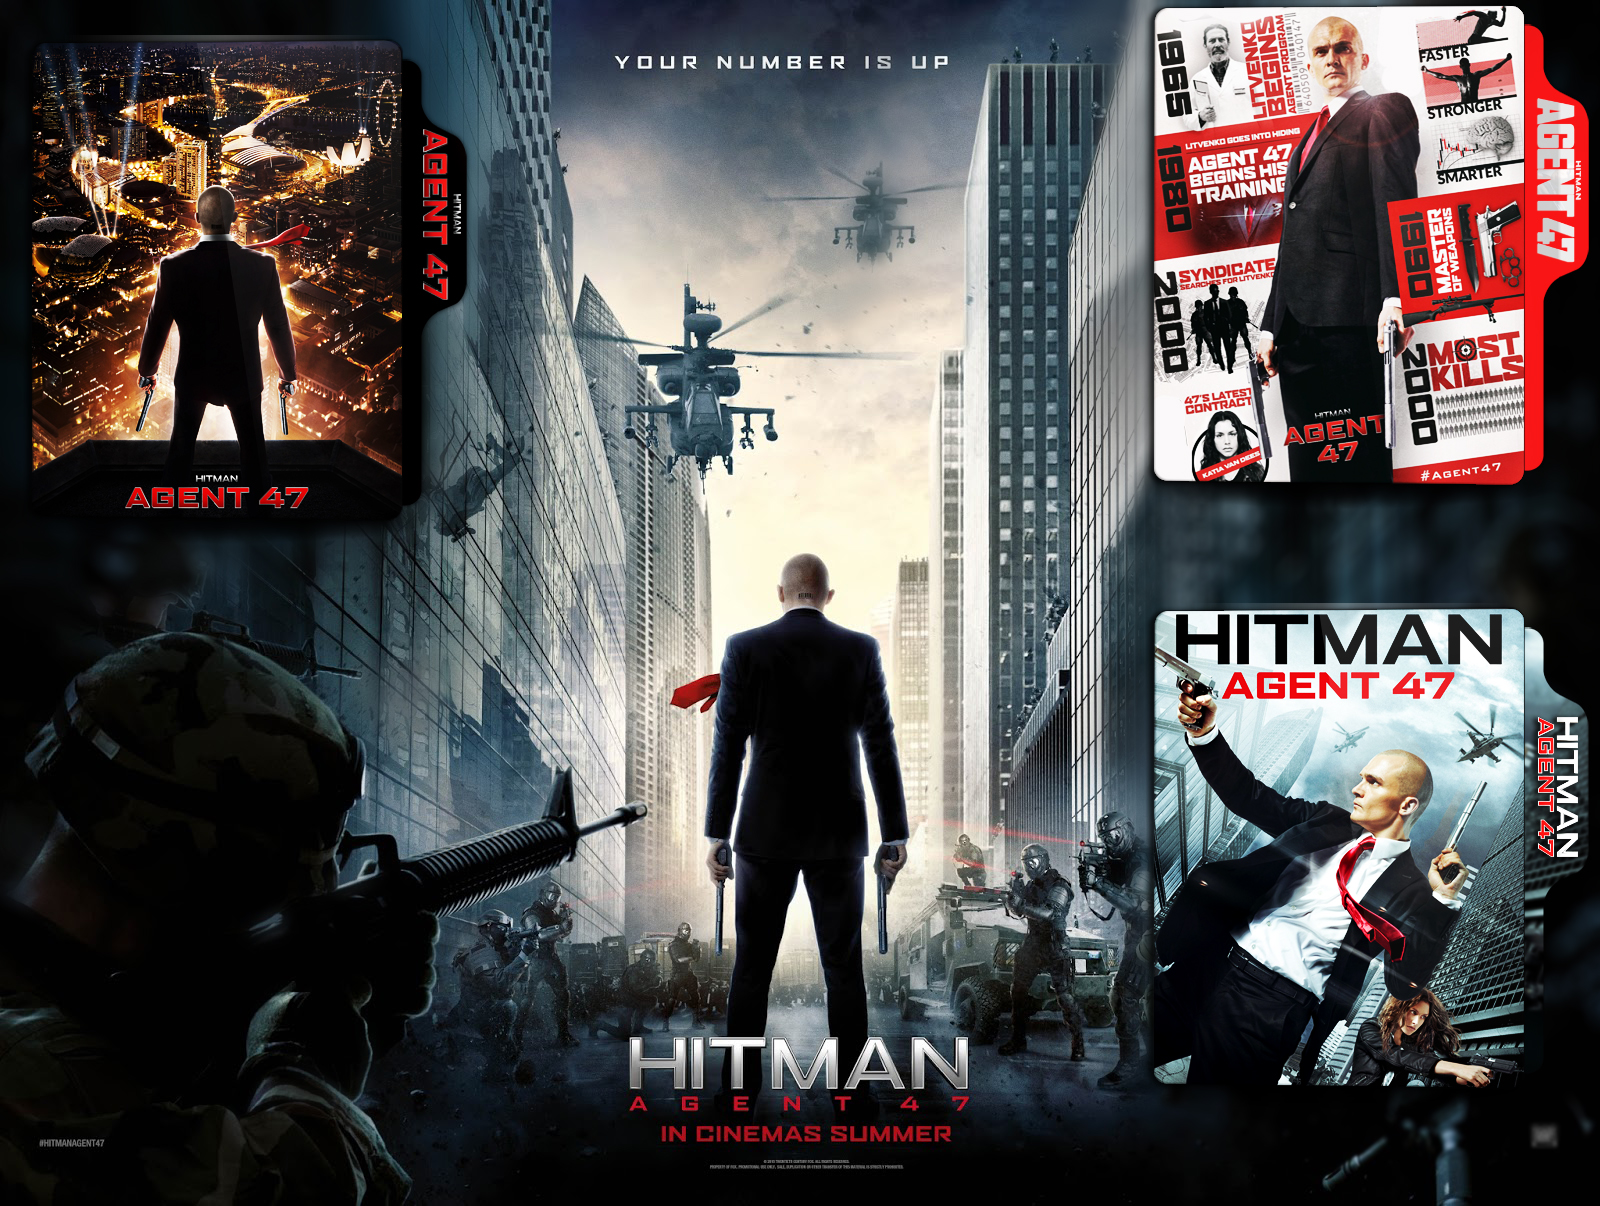 Hitman Agent 47 2015 Folder Icon By Arjunnokha On Deviantart